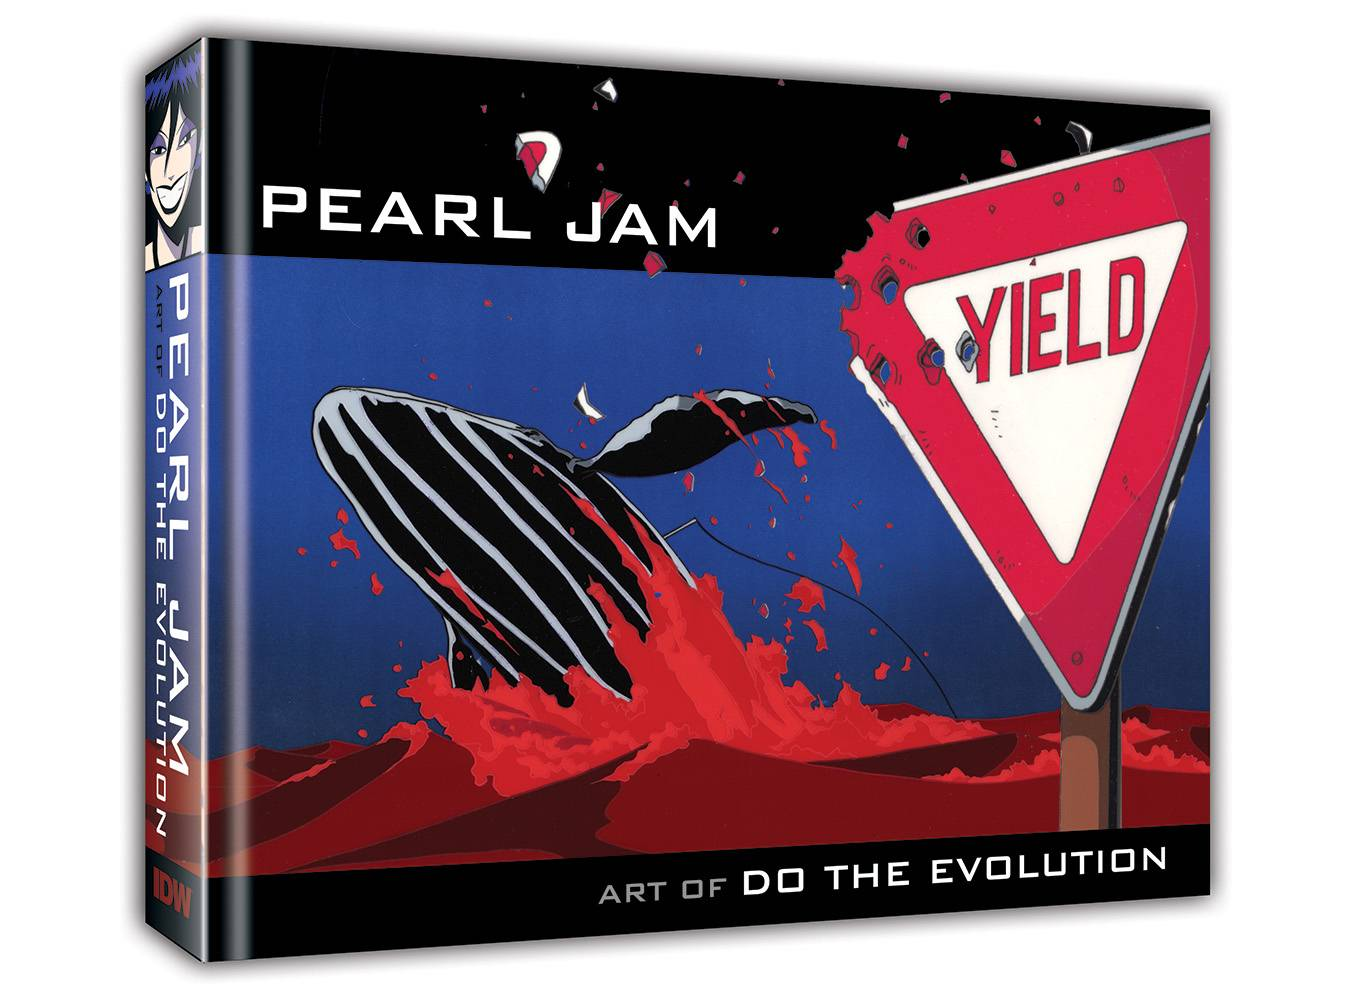 PEARL JAM ART OF DO THE EVOLUTION HC (RES)